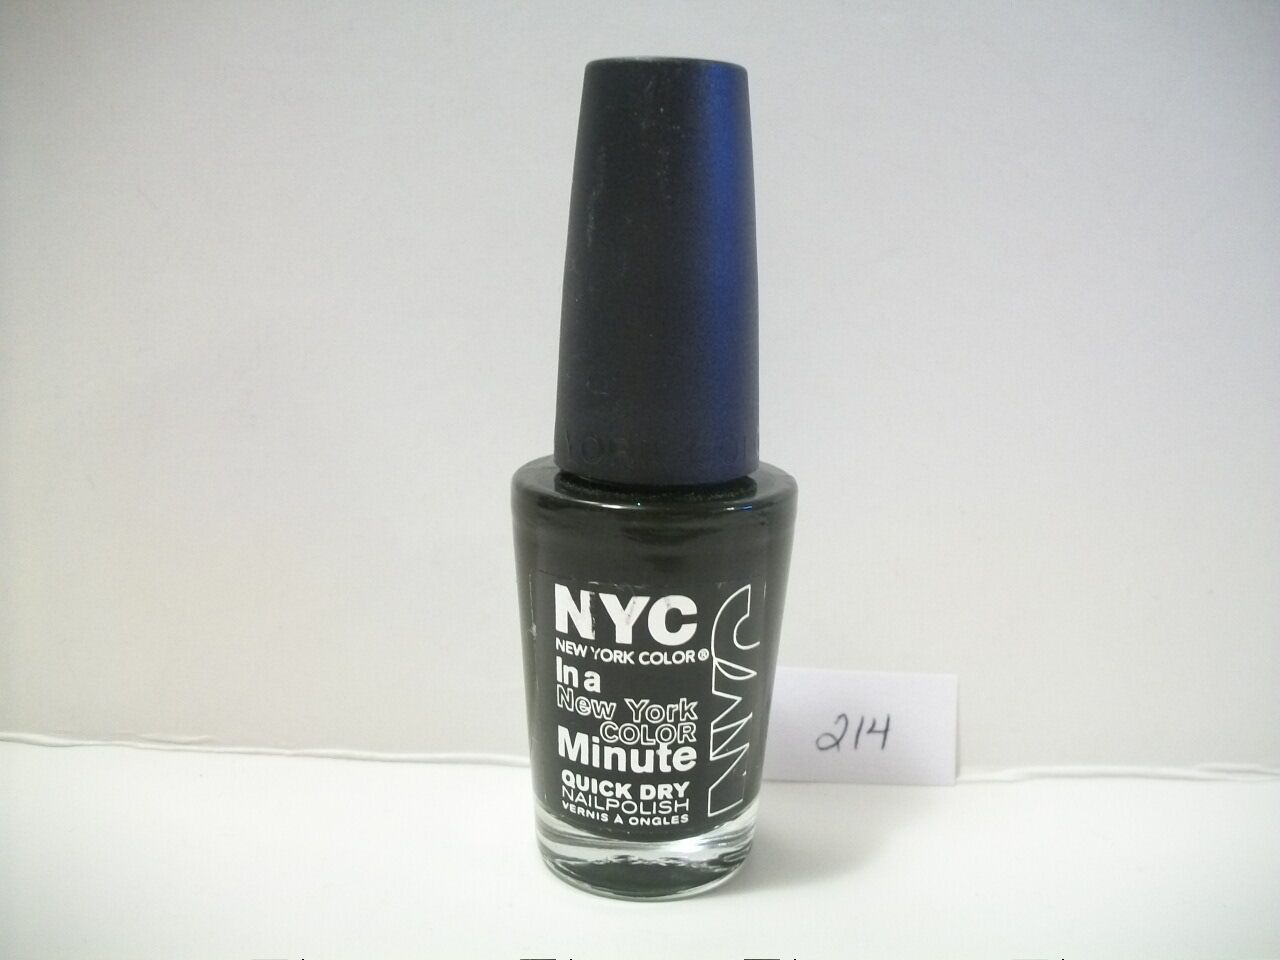 NYC Flat Iron Green Nail Polish York Color 214 Lacquer in a Minute ...